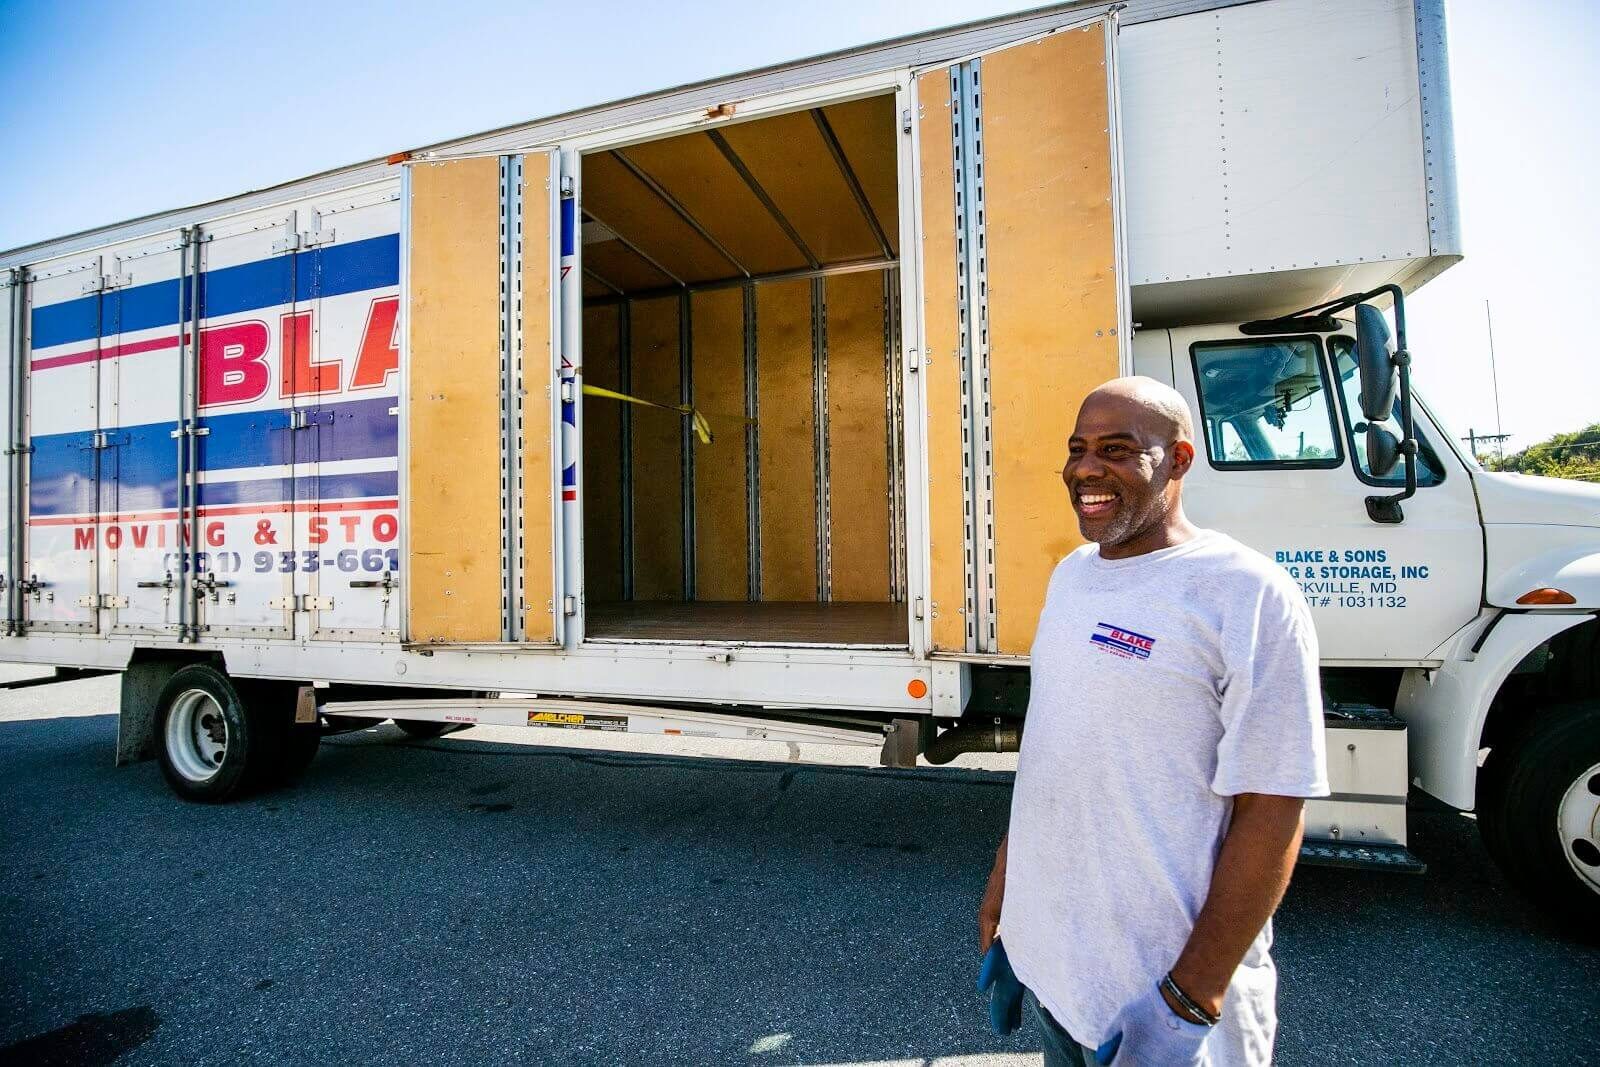 Home movers in Gaithersburg